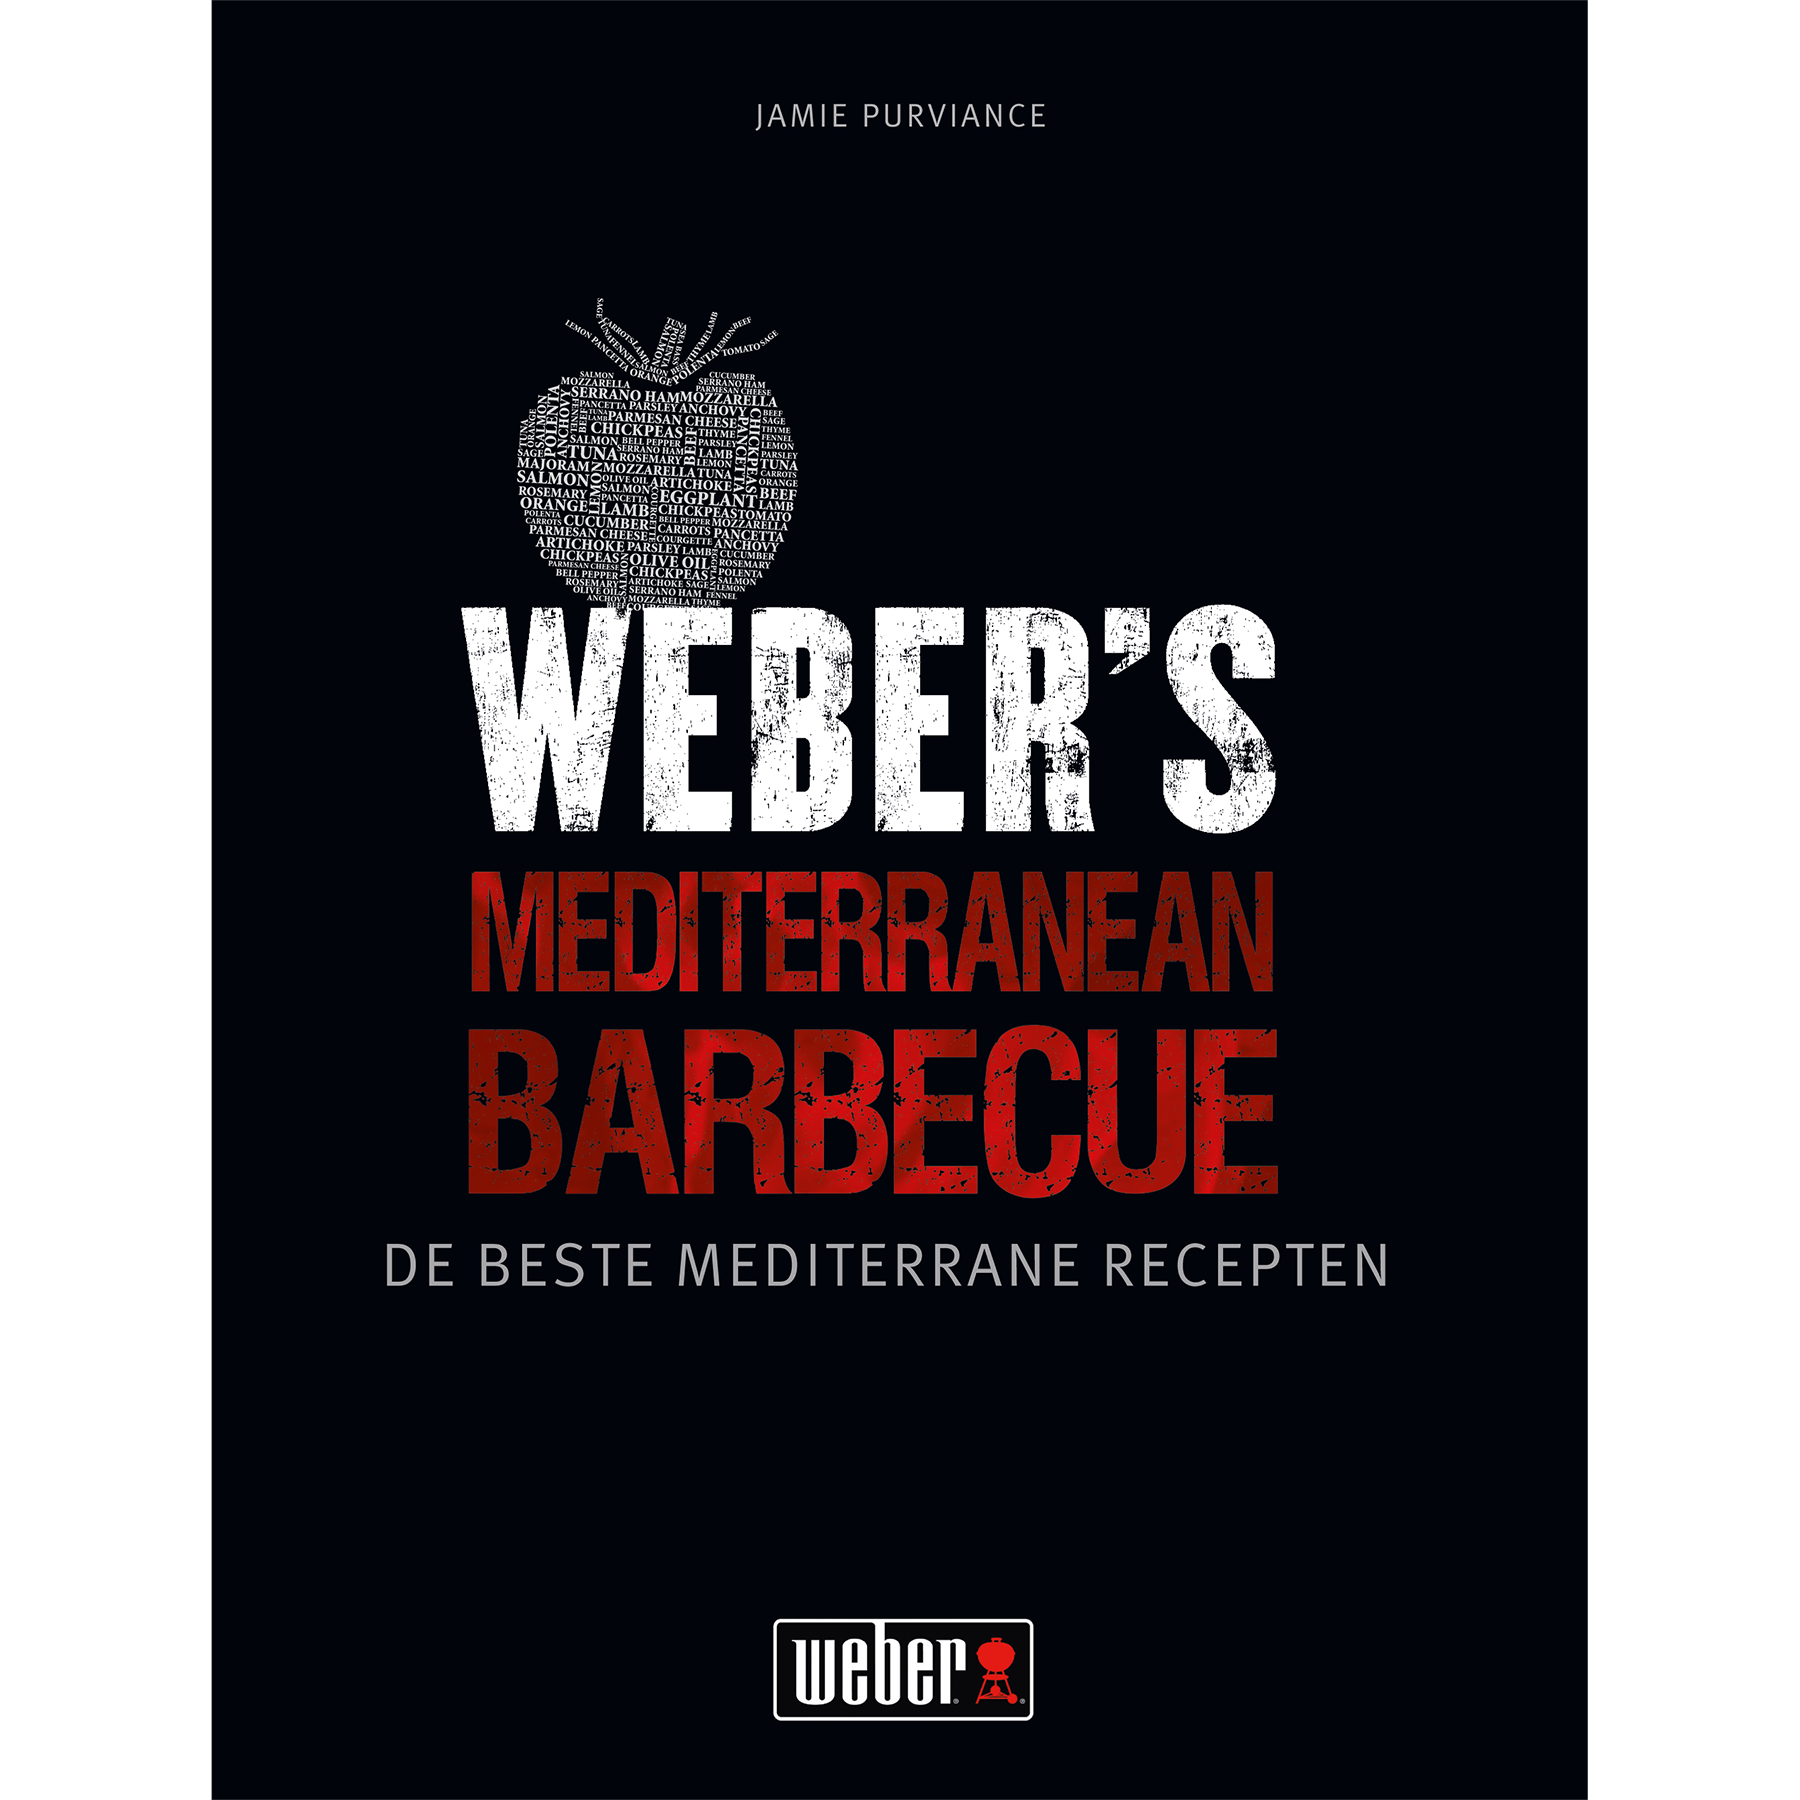 Weber's Mediterrean Barbecue